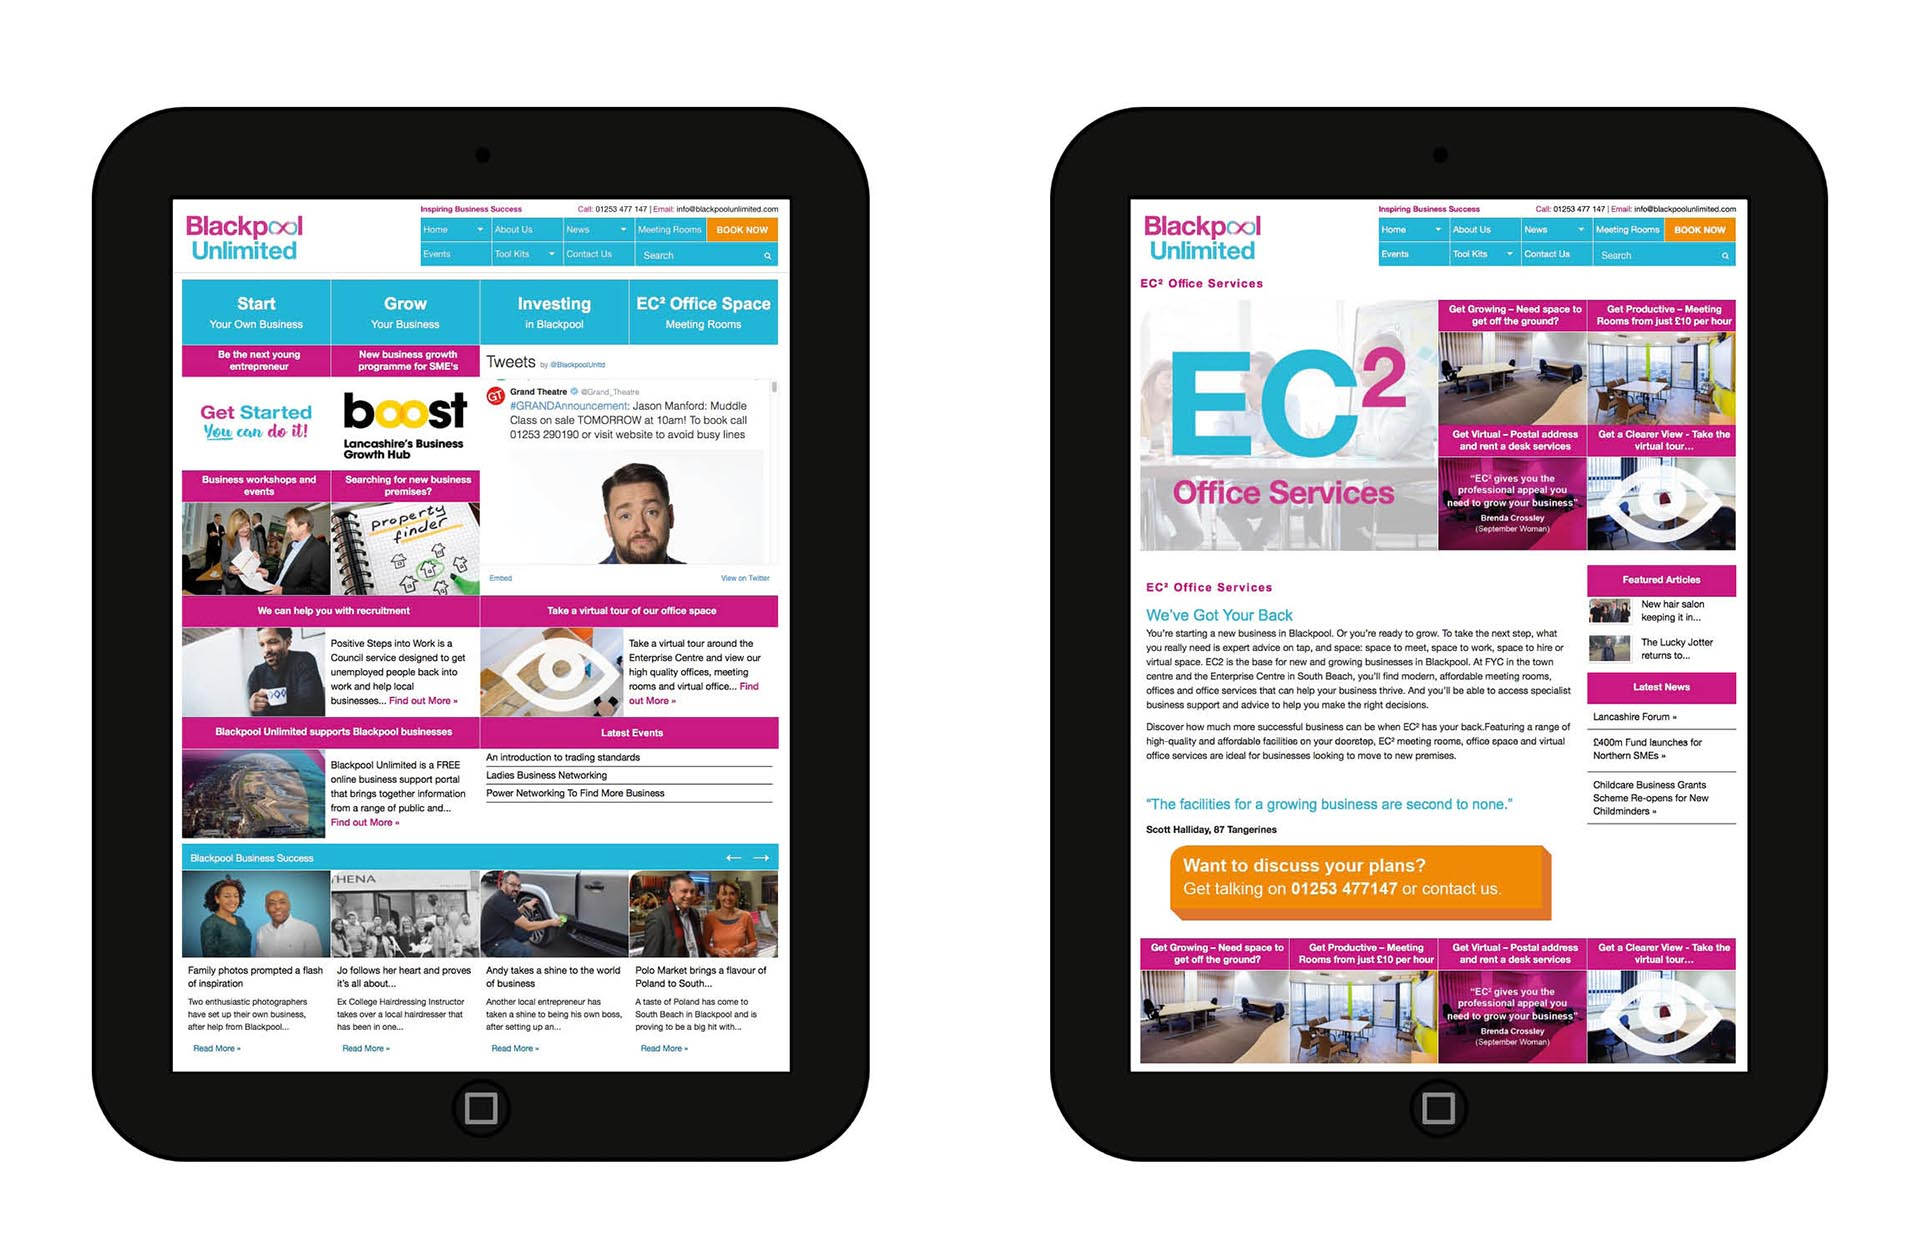 Brand Building & Website – Blackpool Unlimited